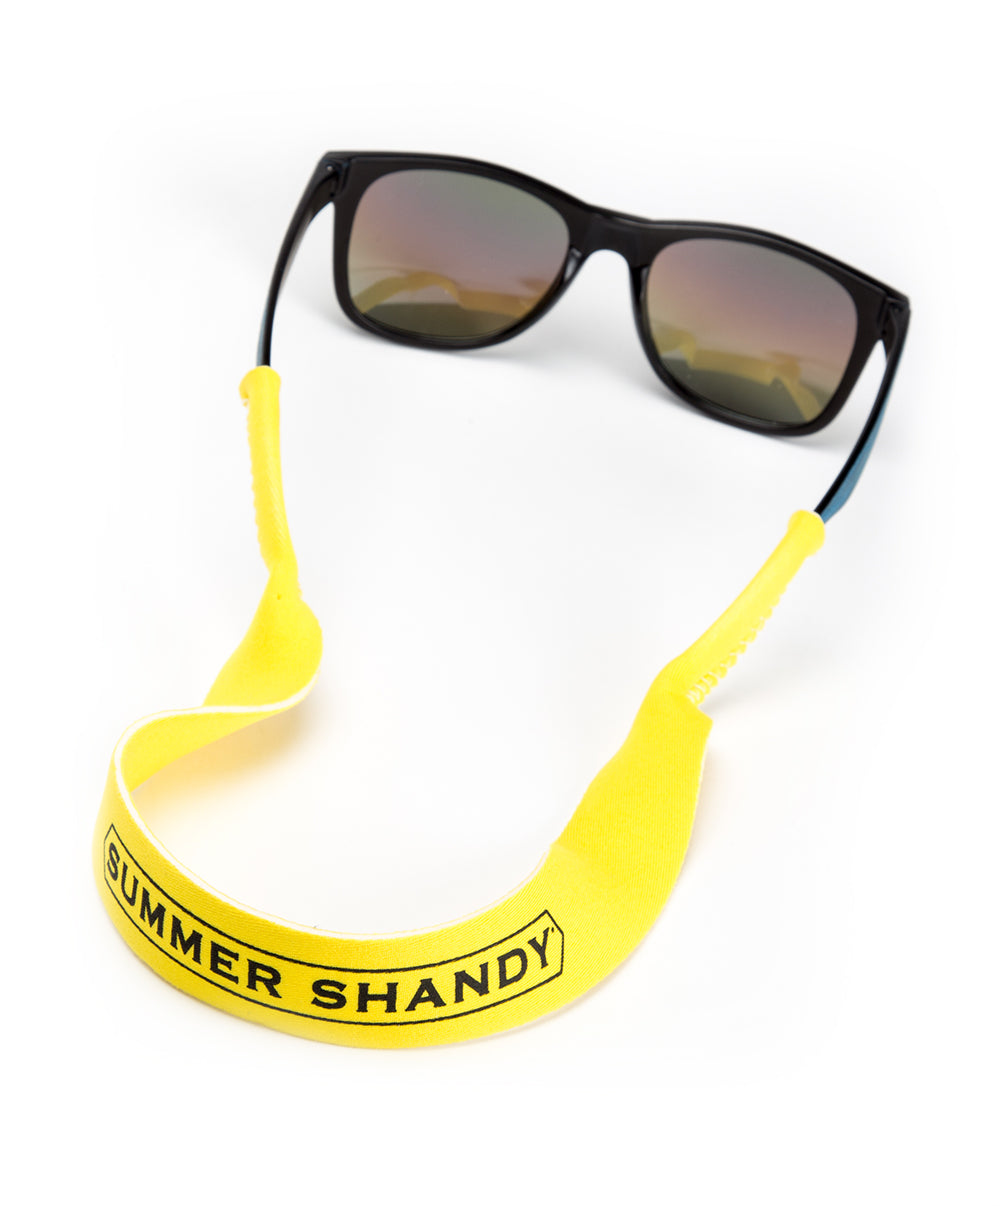 YELLOW SHANDY EYEWEAR STRAP